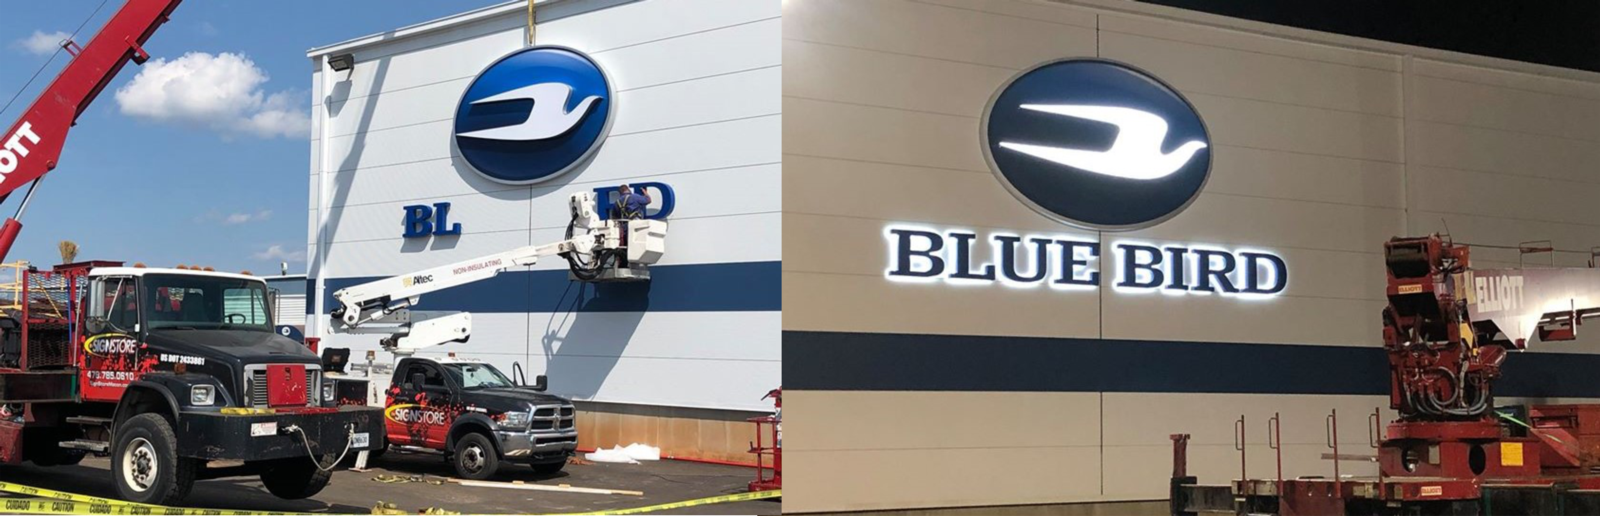 The Sign Stores Fleet of Cranes and trucks install the lighted blue bird sign to the building